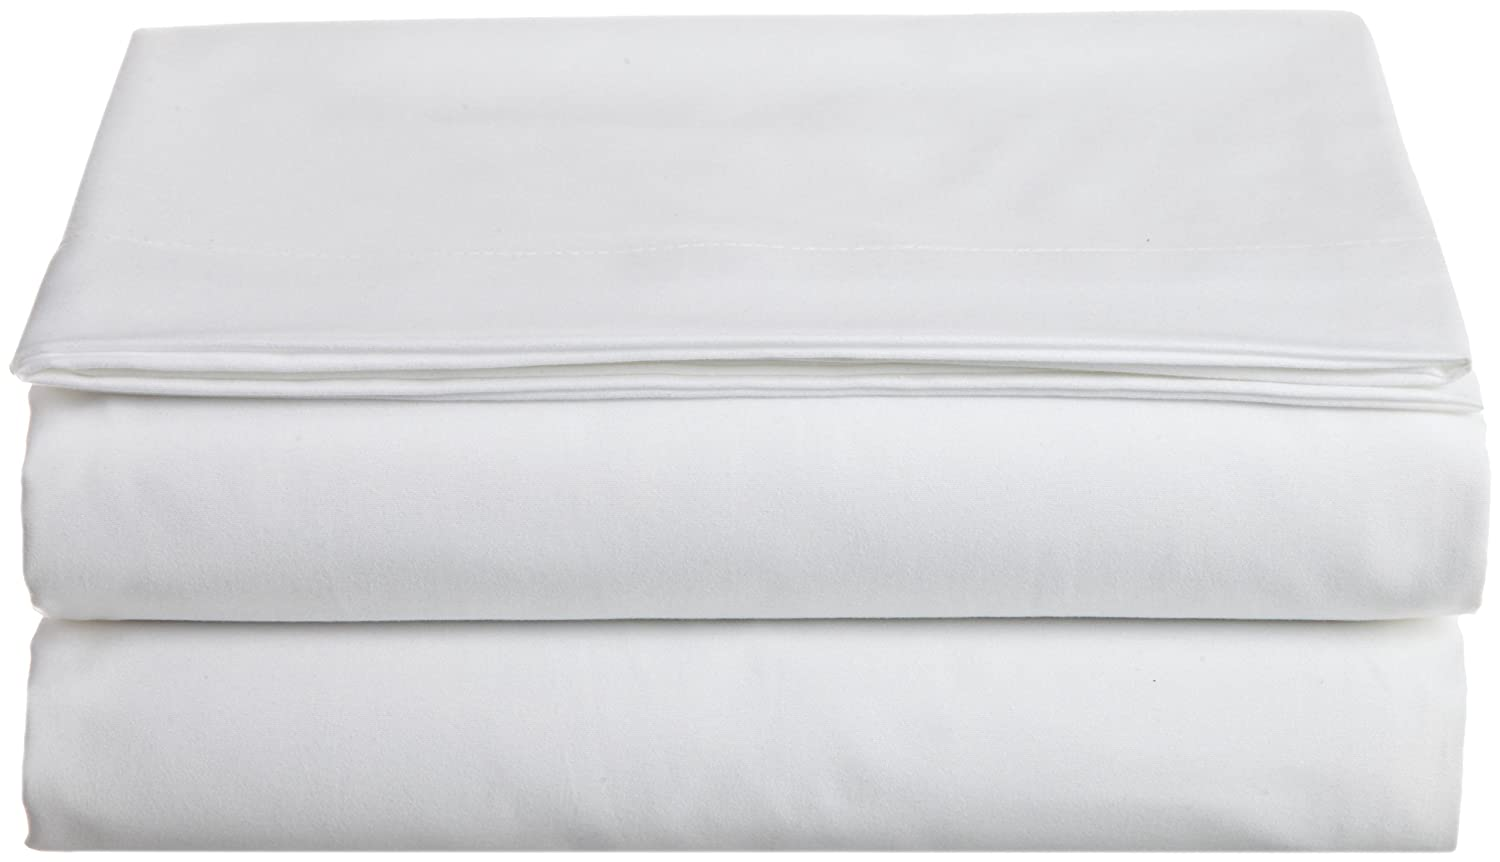 Cathay Home Hospitality Luxury Soft Flat Sheet of 100-Percent Microfiber Construction, Full Size, White Color Cathay Home Fashions 108071-FL-F